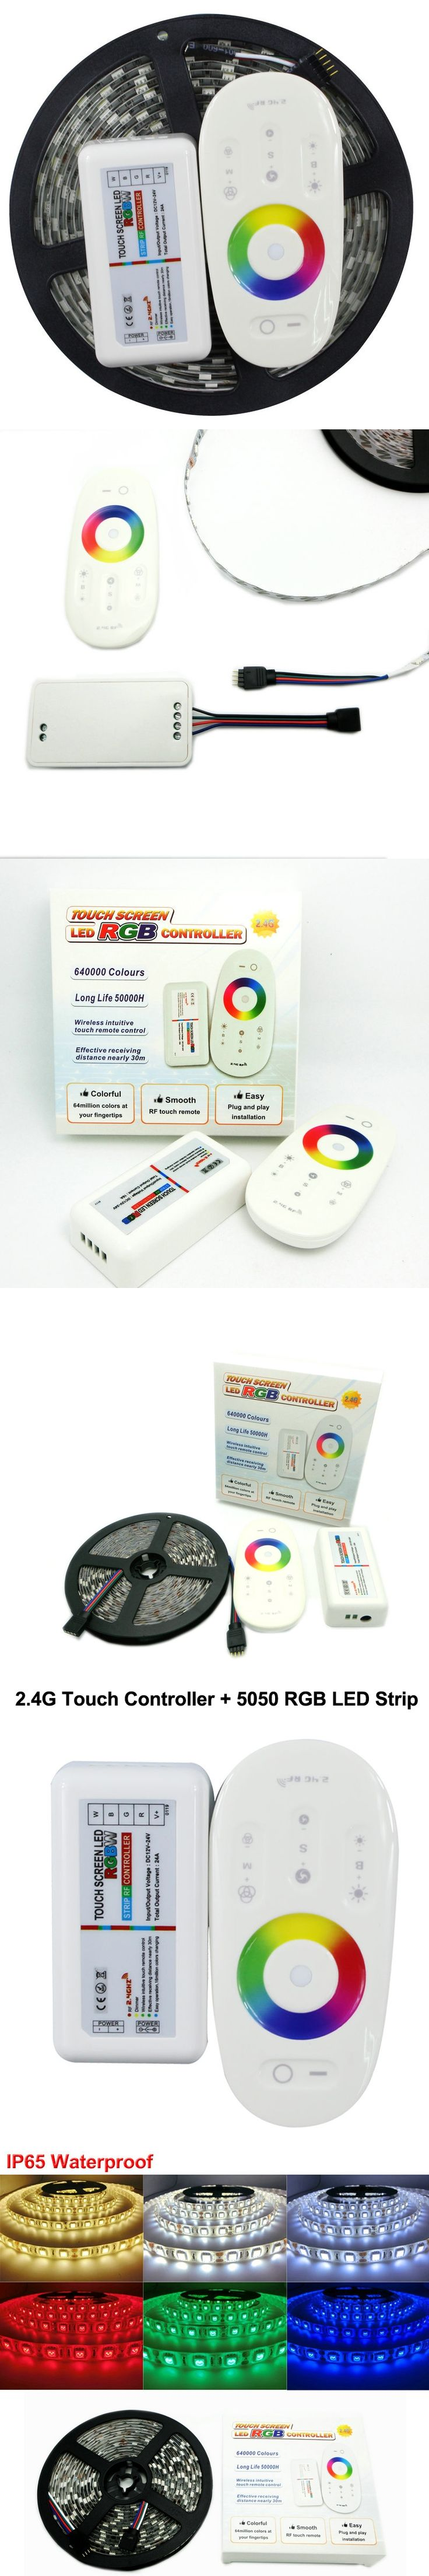 L13 5050 RGB LED Strip 5m + 2.4G Touch controller DC12V 60LED/m RGB Flexible LED Light Sets.